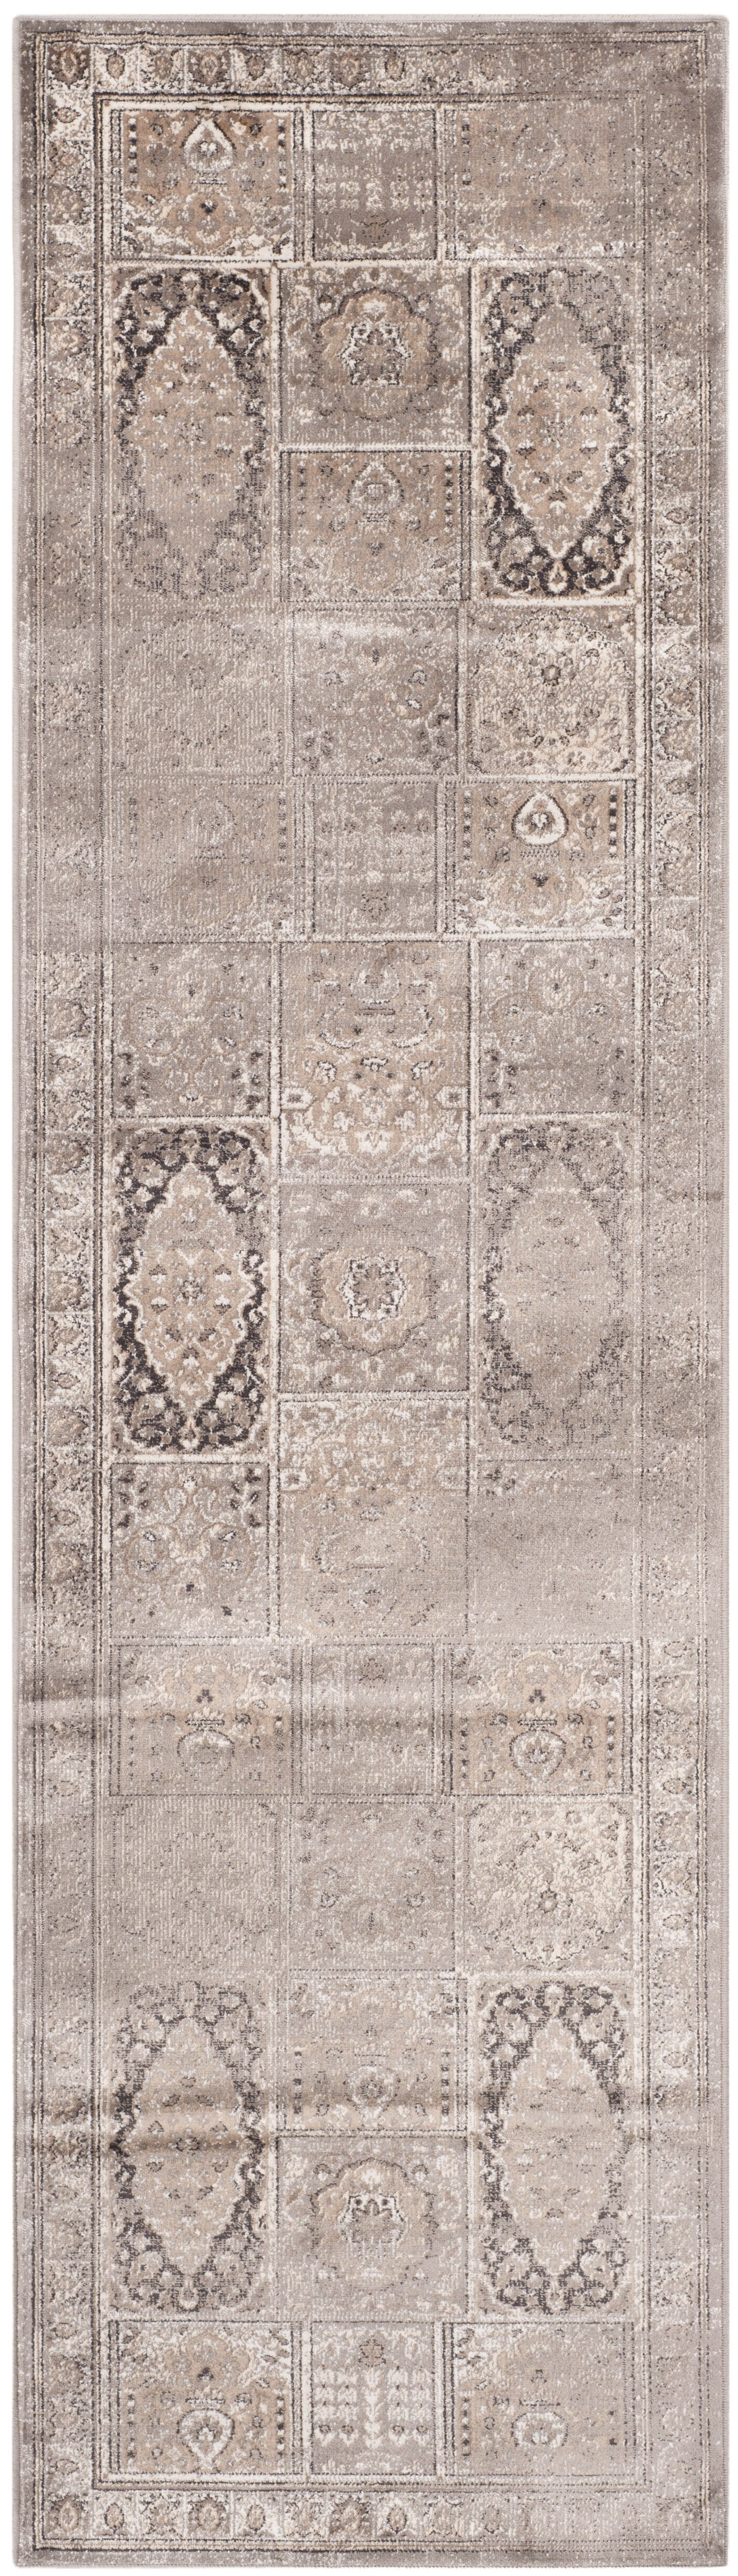 Todd Soft Mocha Area Rug Rug Size: Rectangle 8' x 11'2